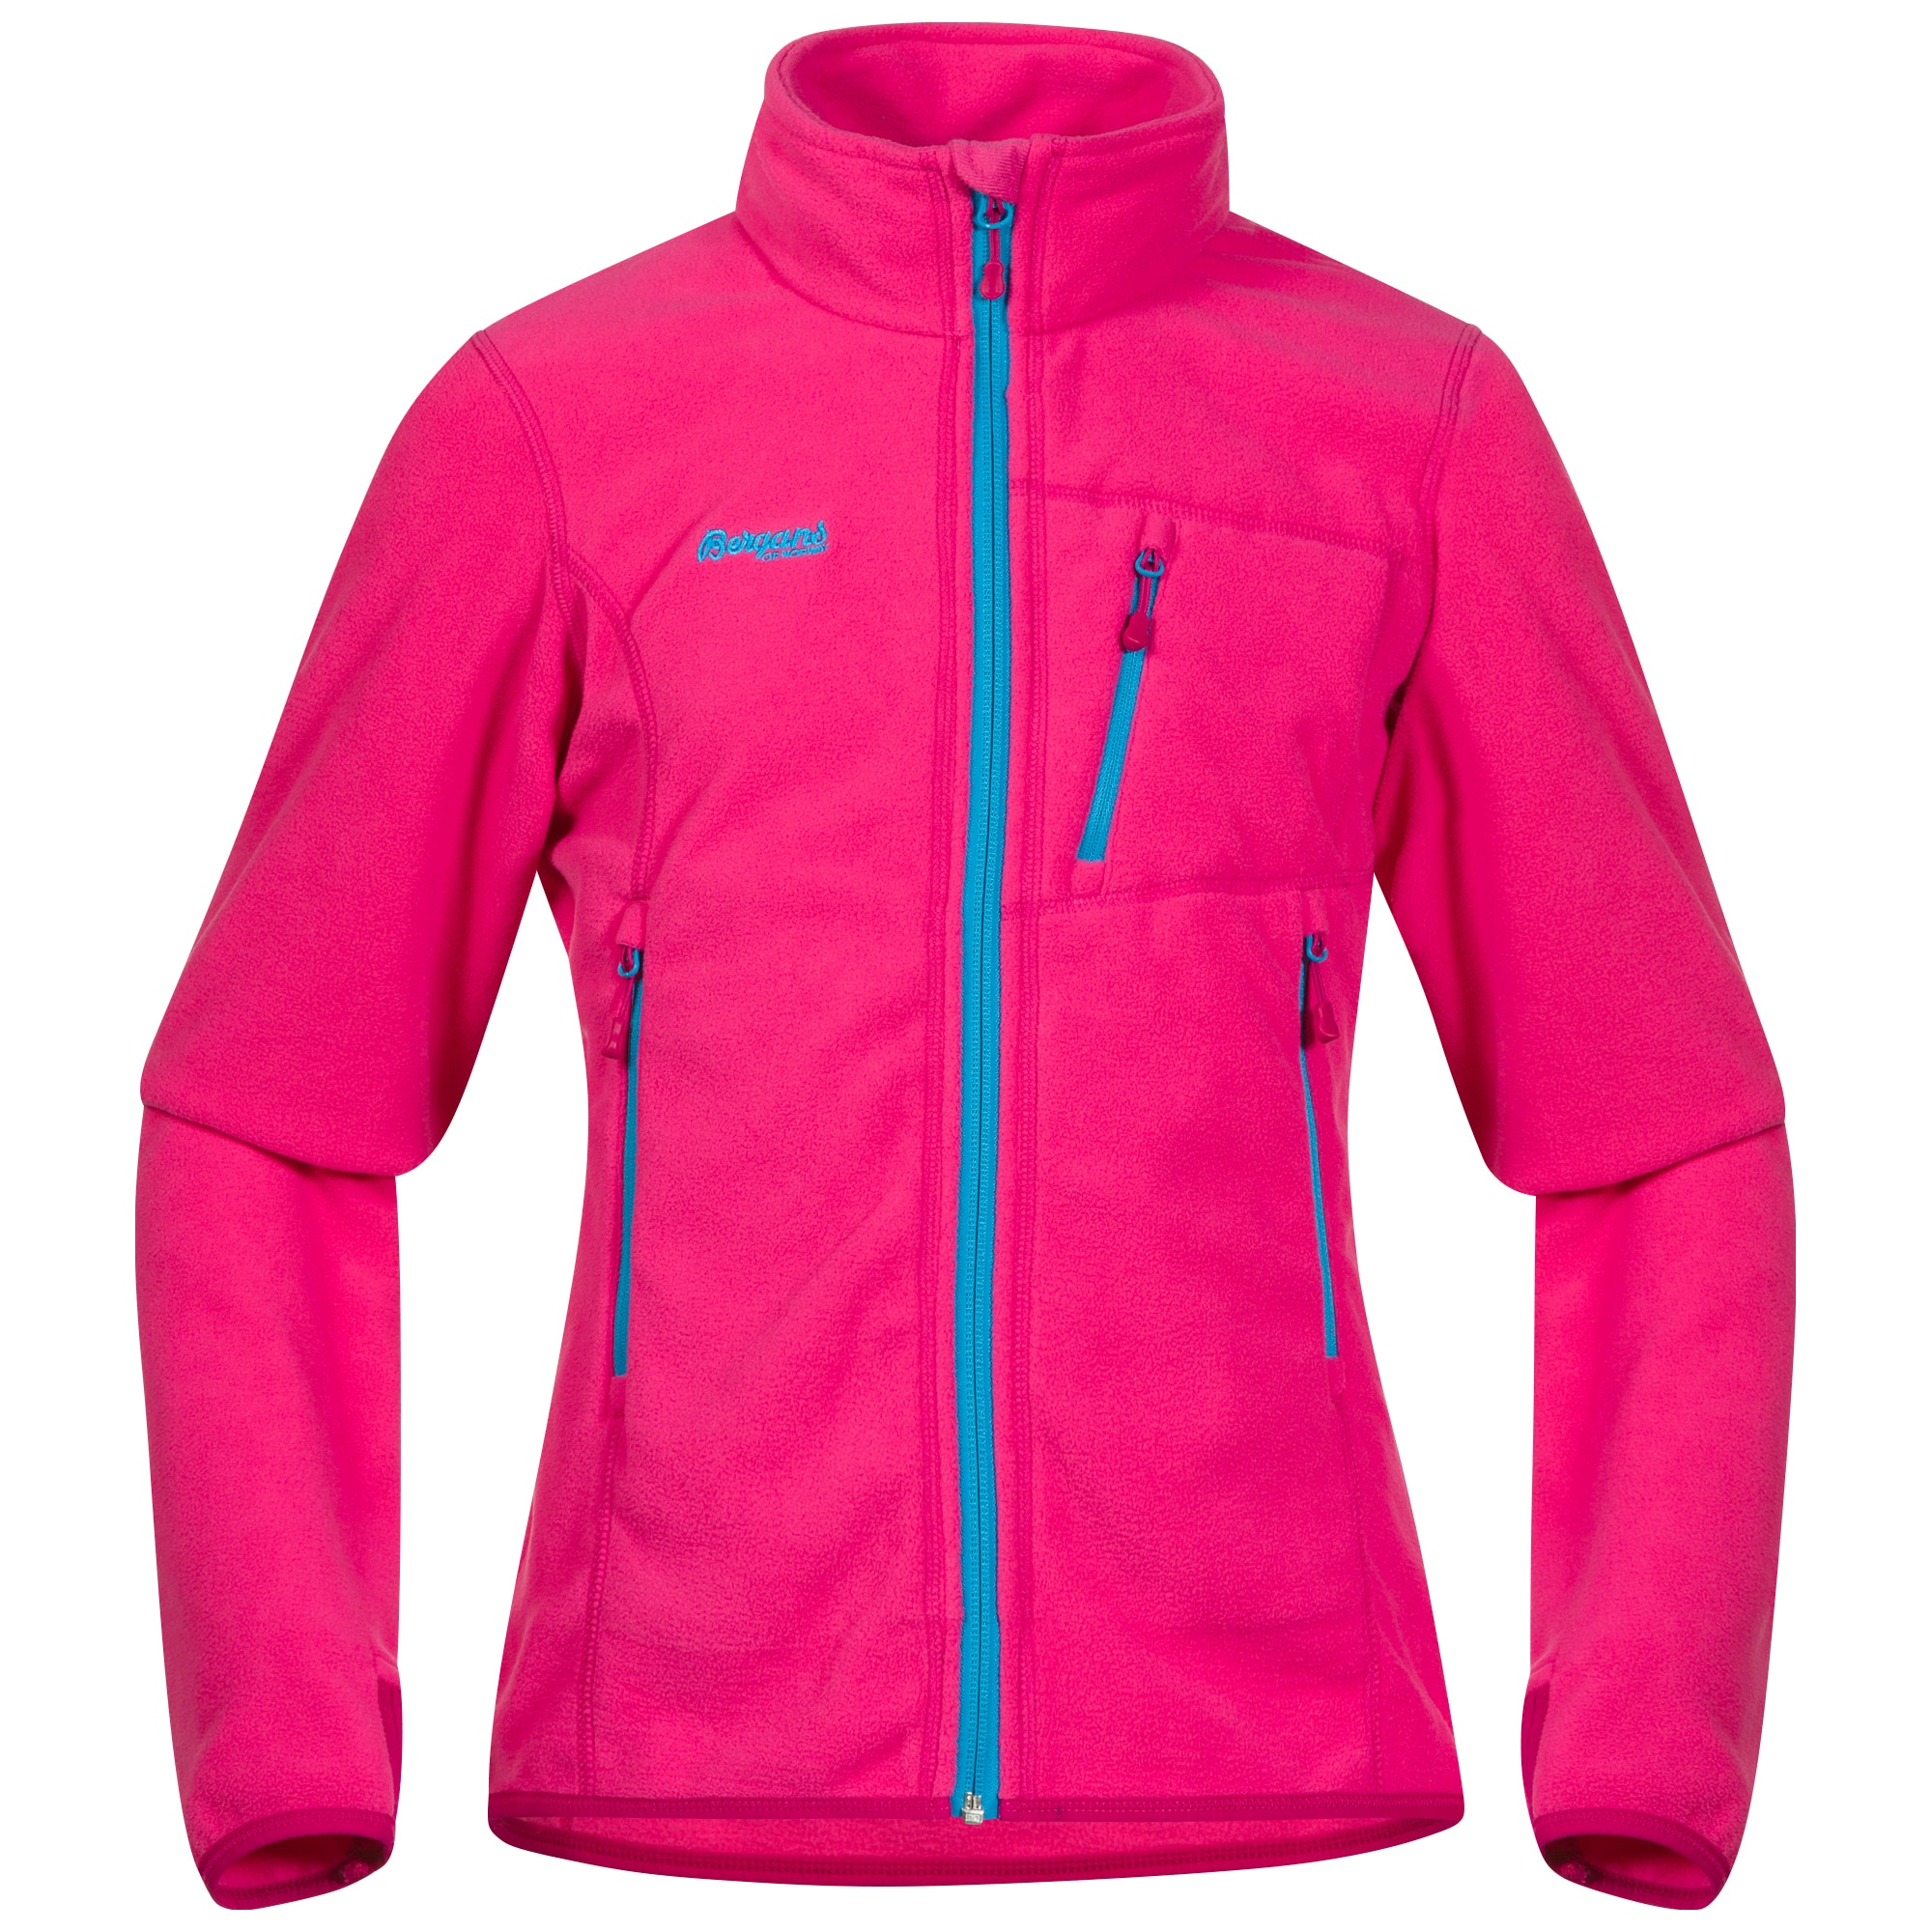 Runde Youth Girl Jacket